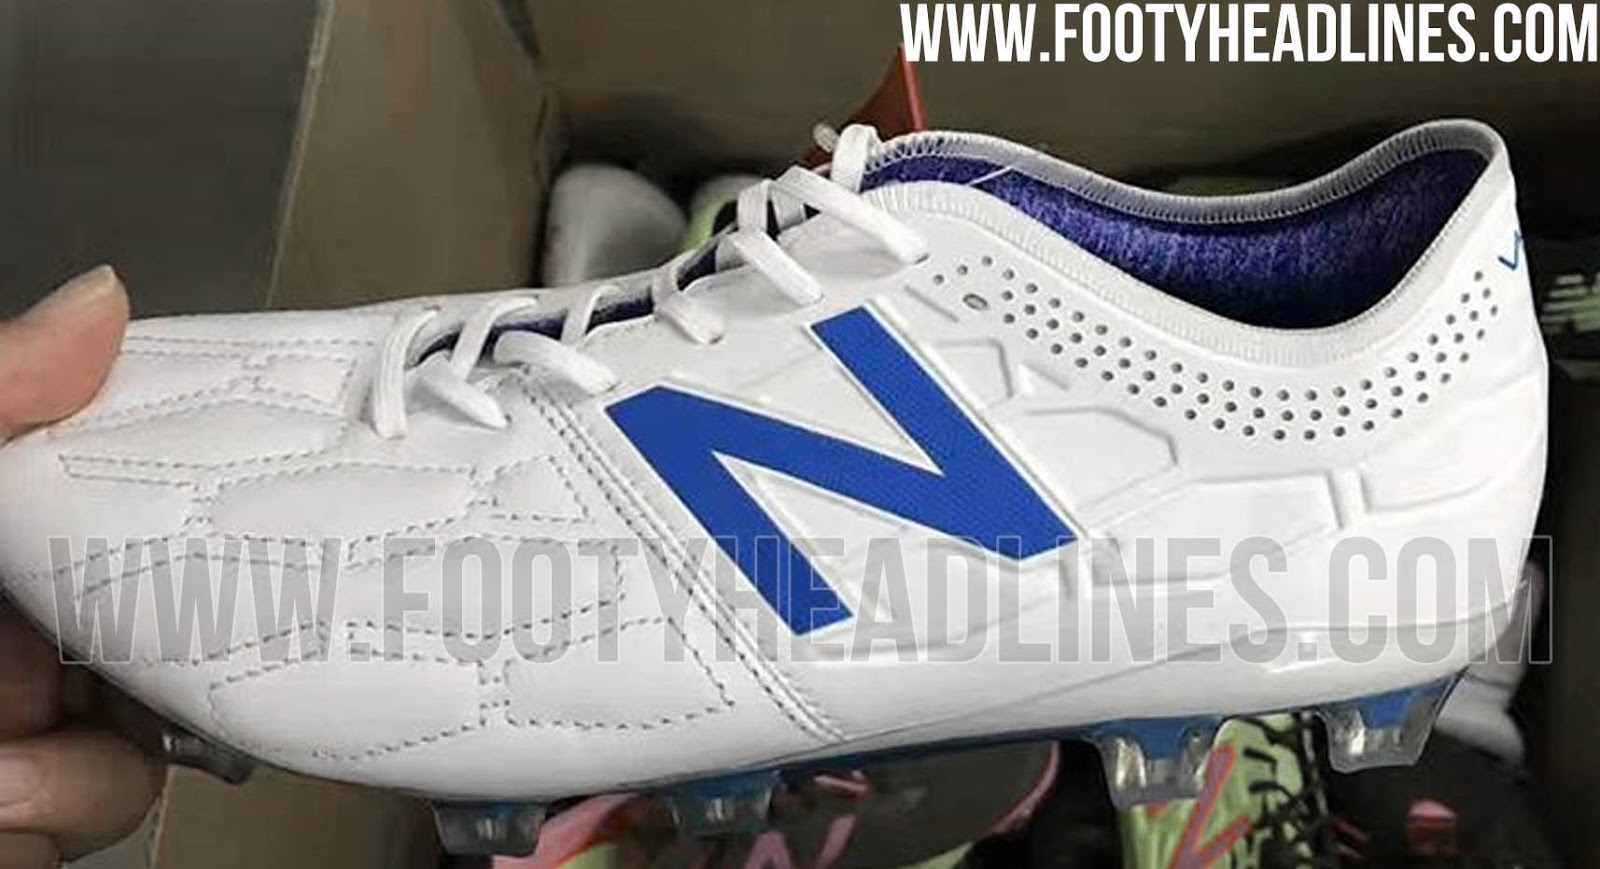 25c4b2a4b This image shows the white and blue New Balance Visaro 2 Kangaroo leather  boot.